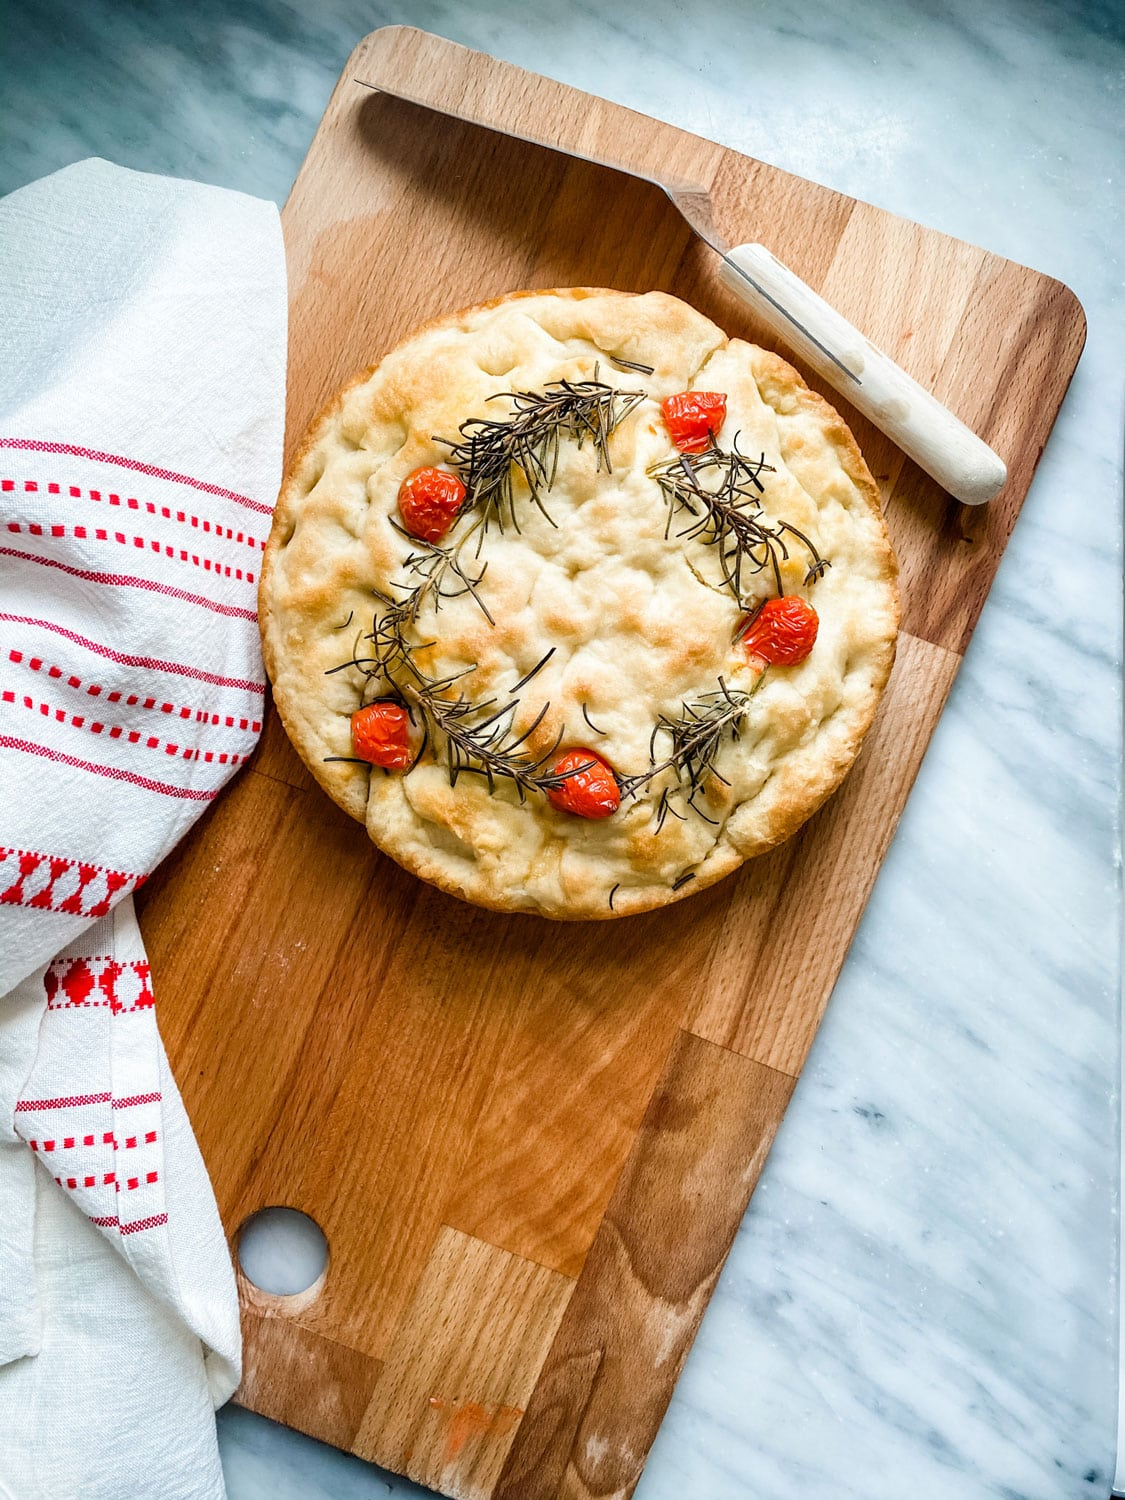 Lifestyle Blogger Annie Diamond shares her fast and easy focaccia bread that she decorates for the season!